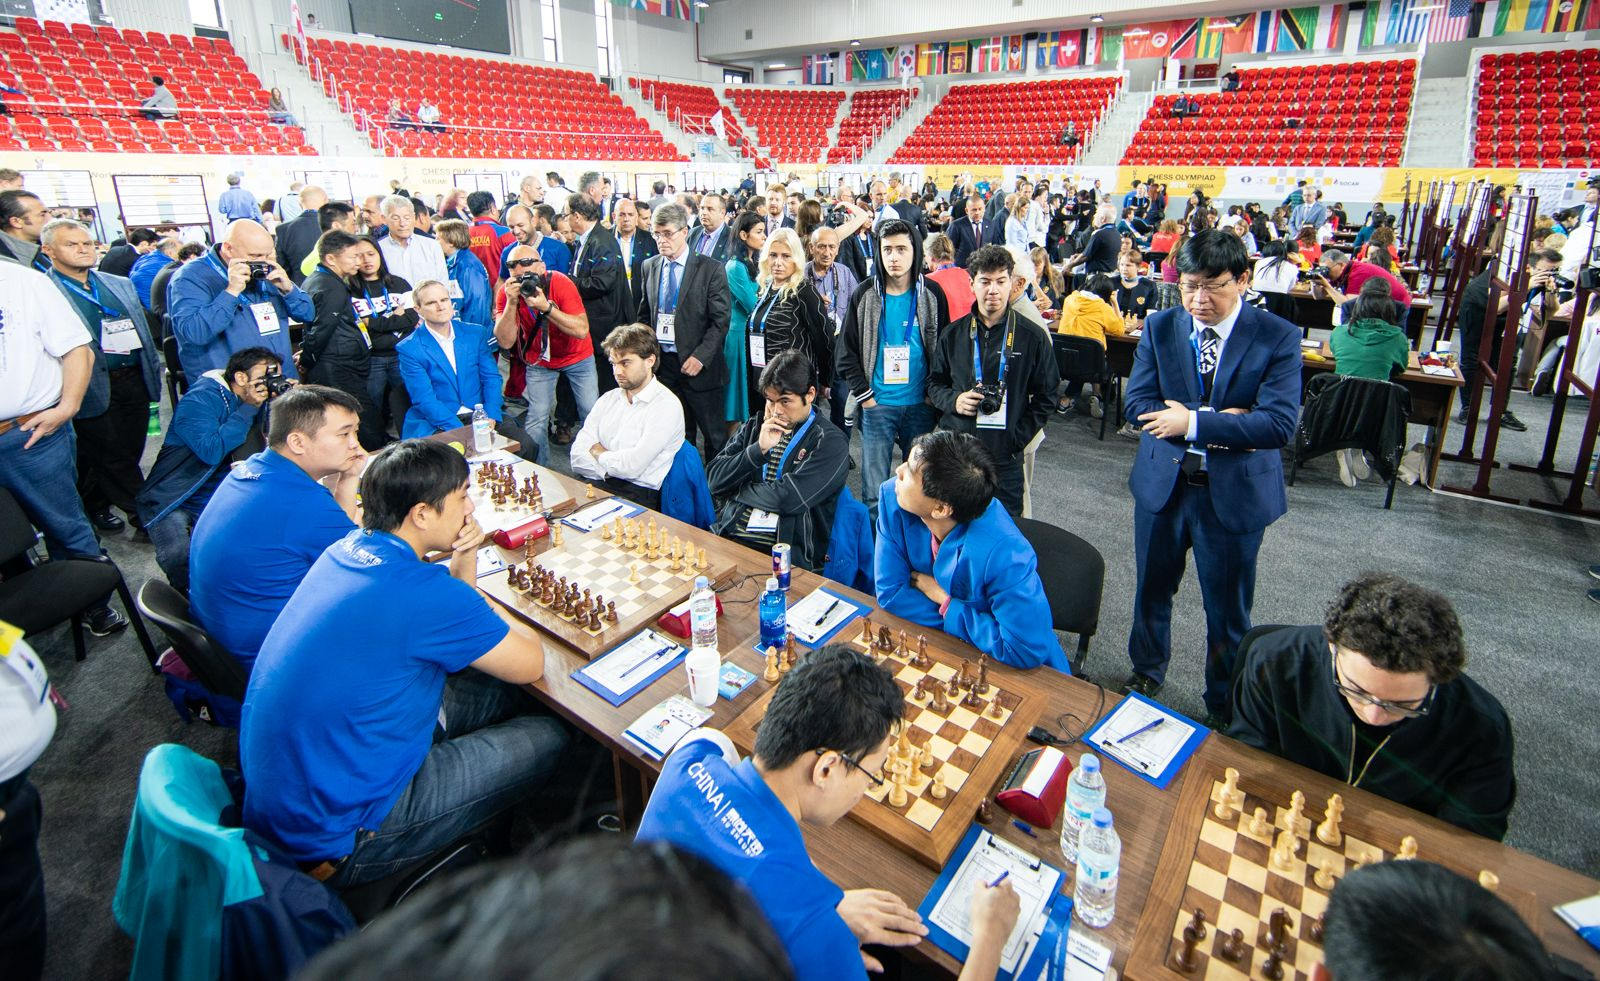 Chess Olympiad 2018: China Wins Double Gold - Chess com